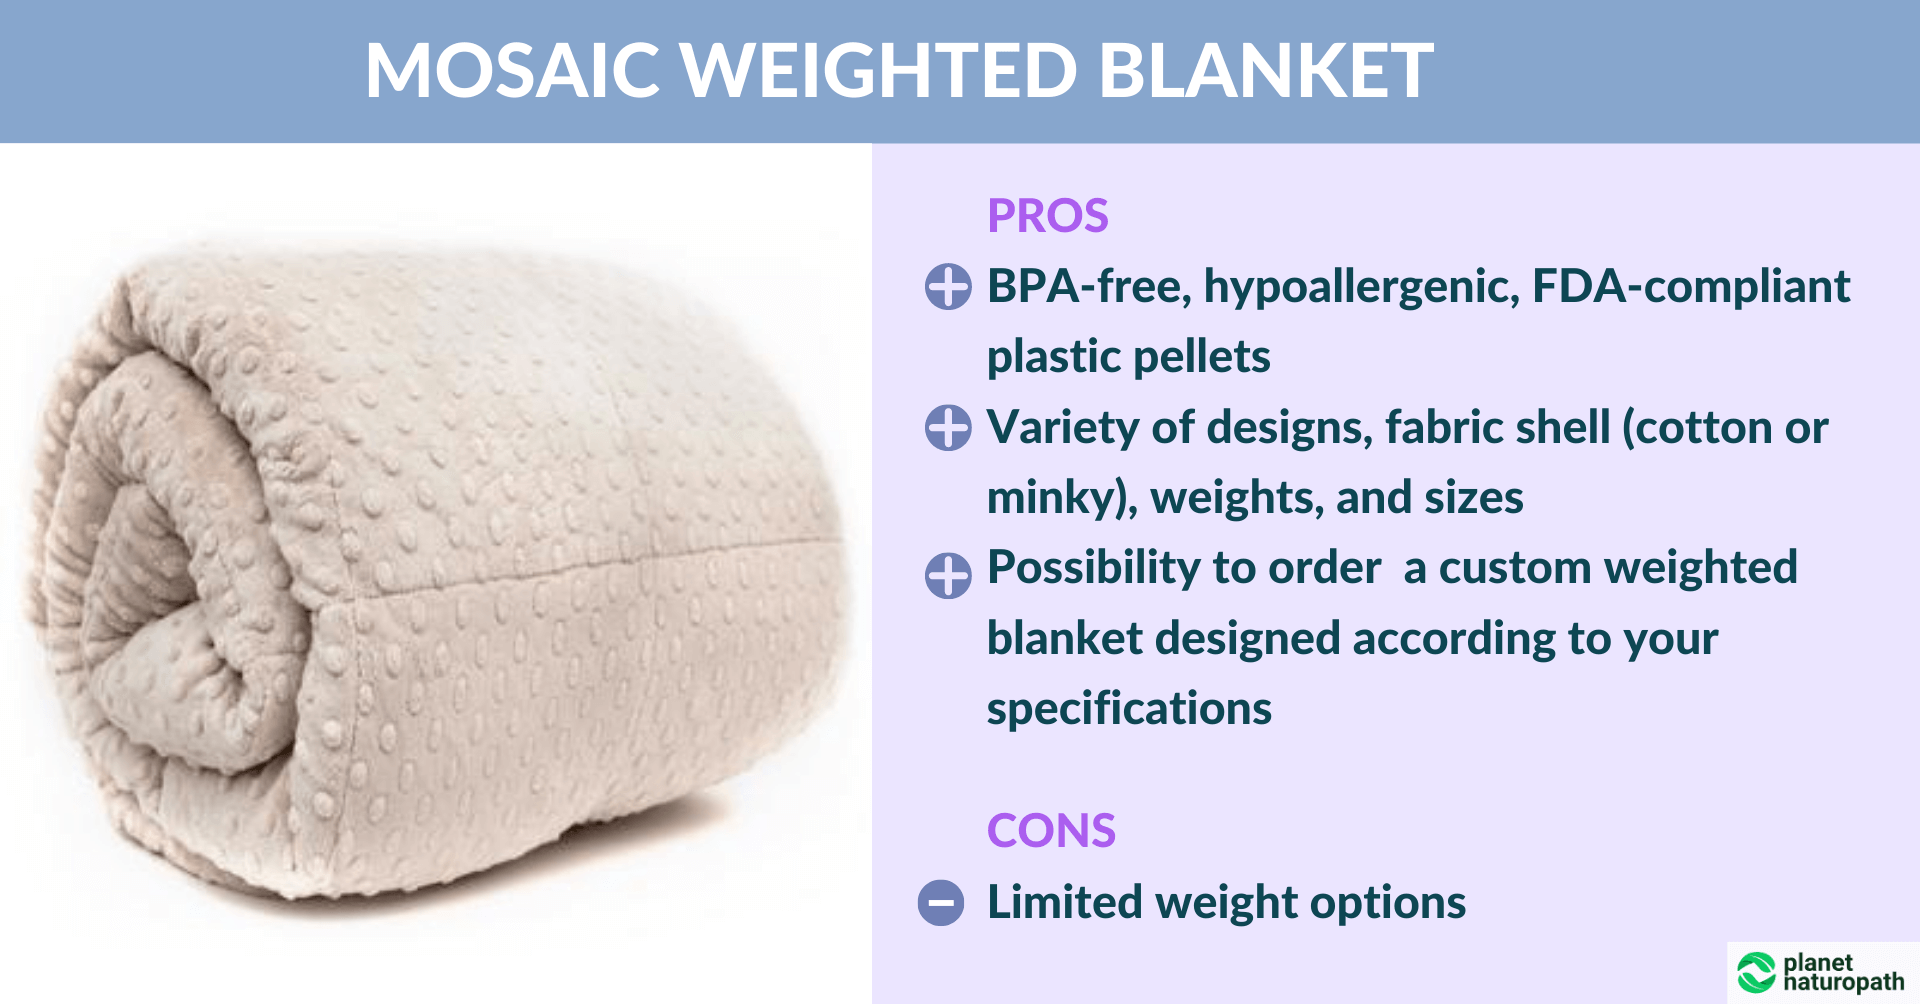 Mosaic-Weighted-Blanket